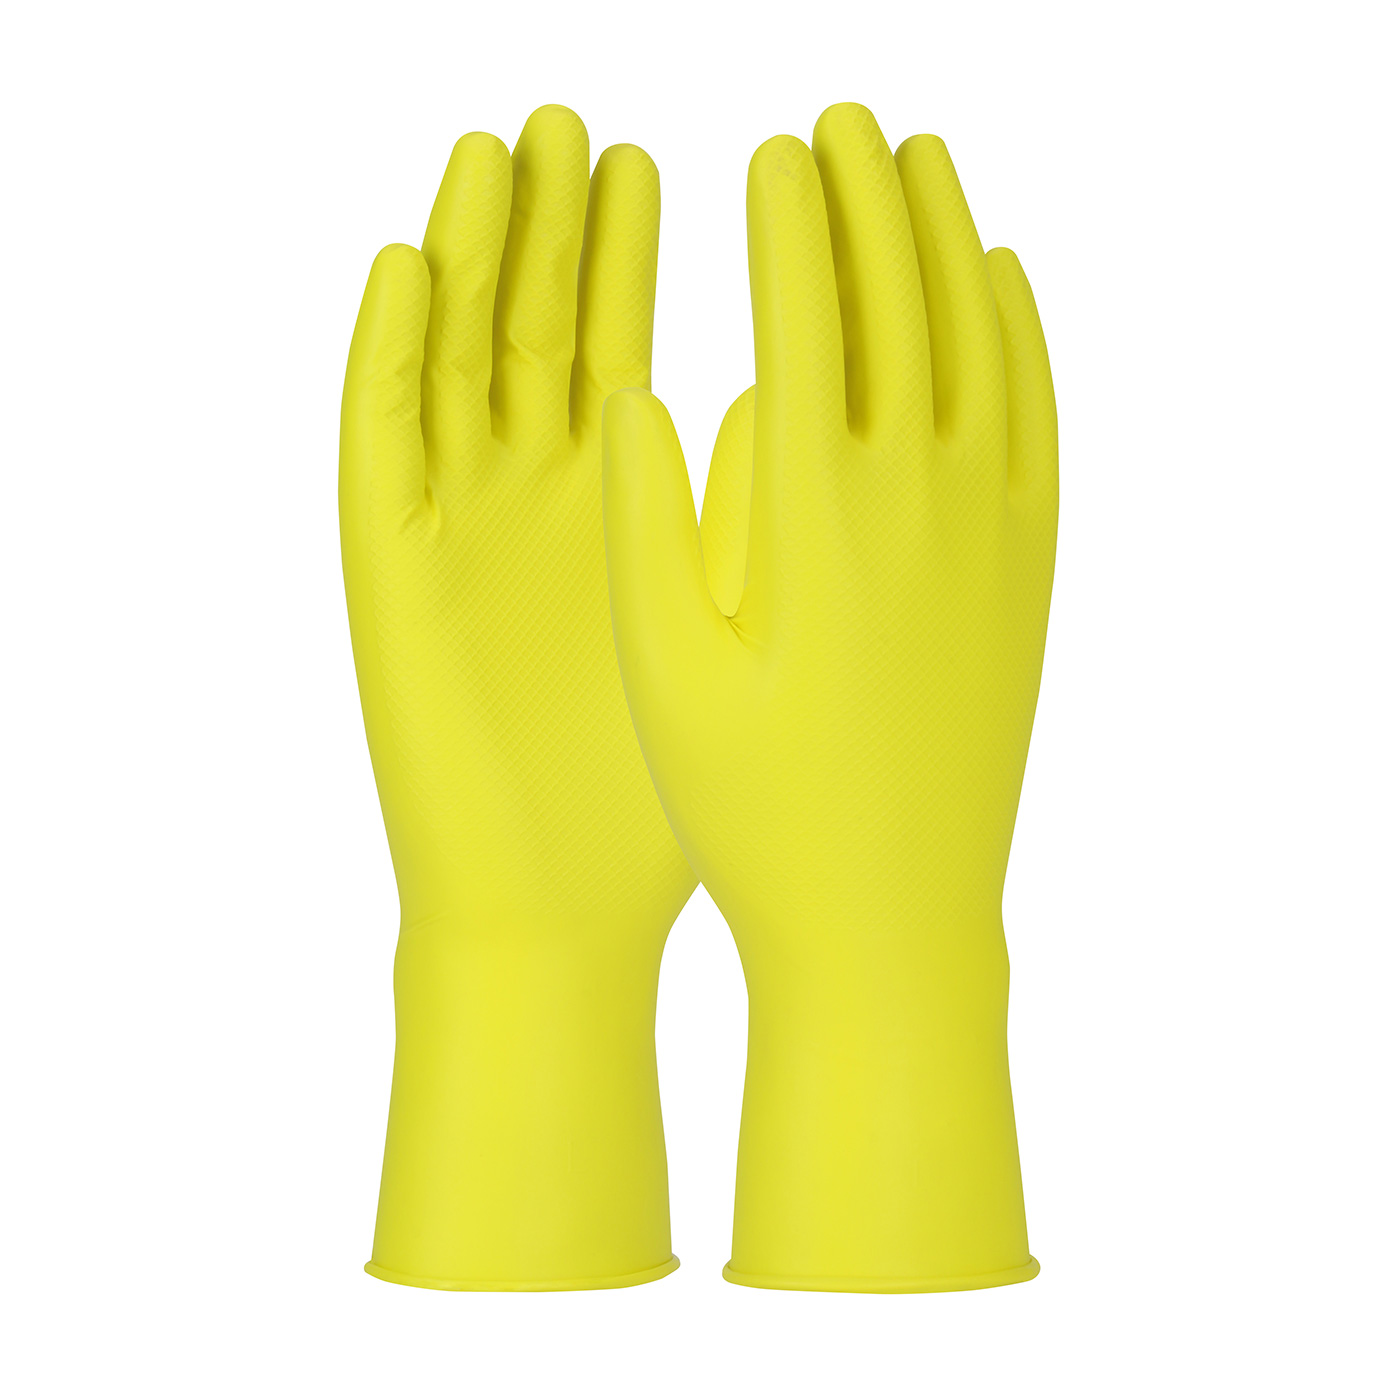 #67-306 PIP® Grippaz™ Yellow 6-mil Jan San Nitrile Gloves